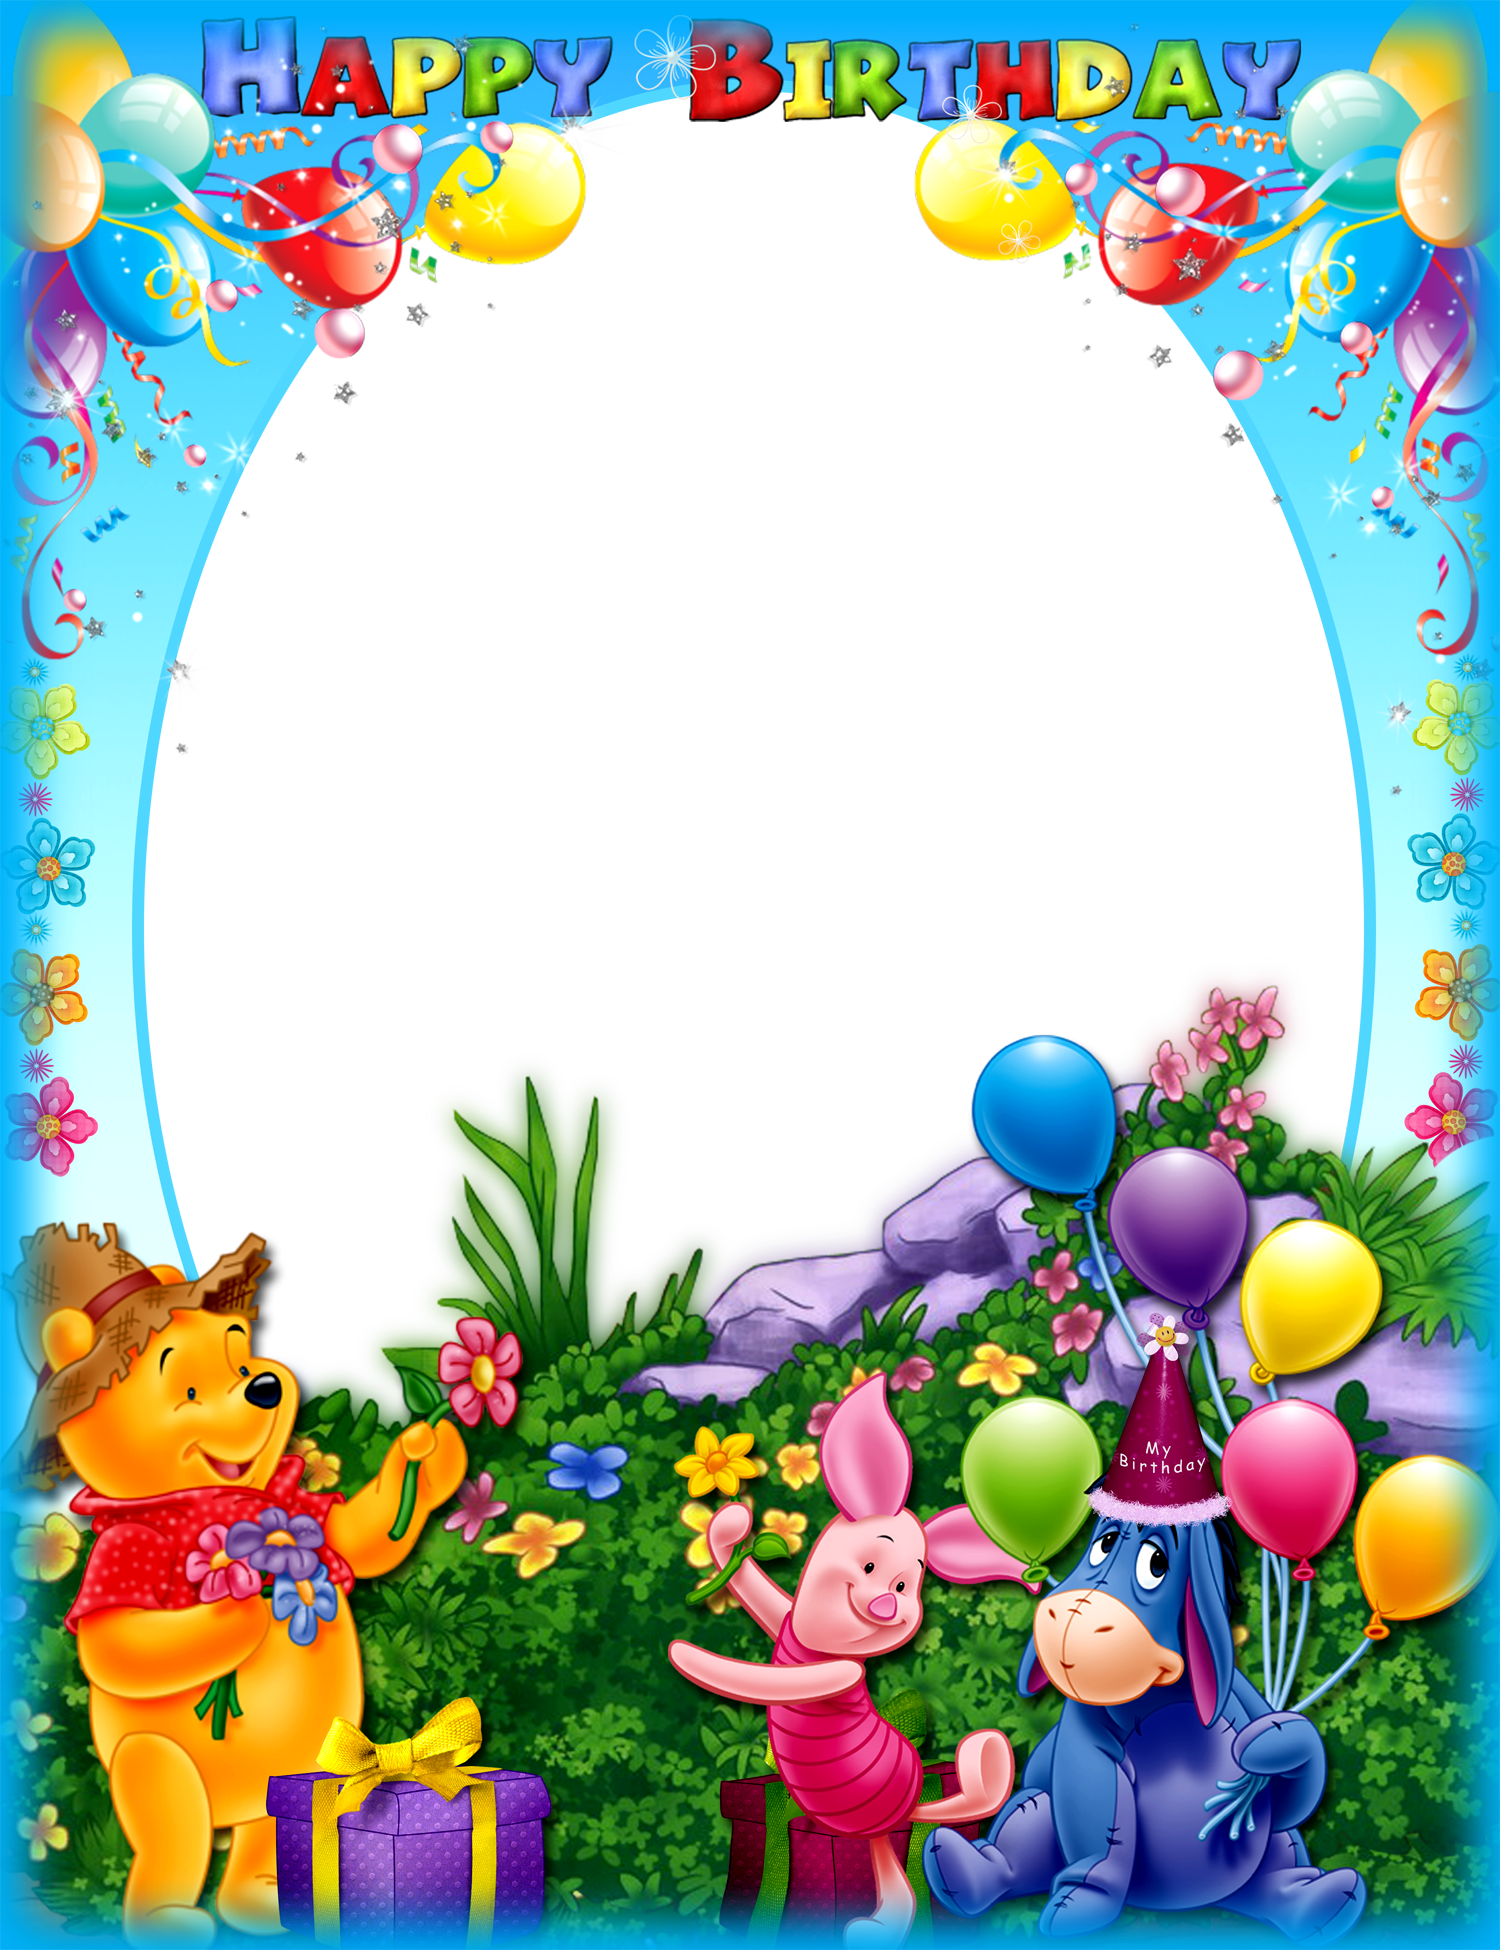 Images free download with. Happy birthday frame png